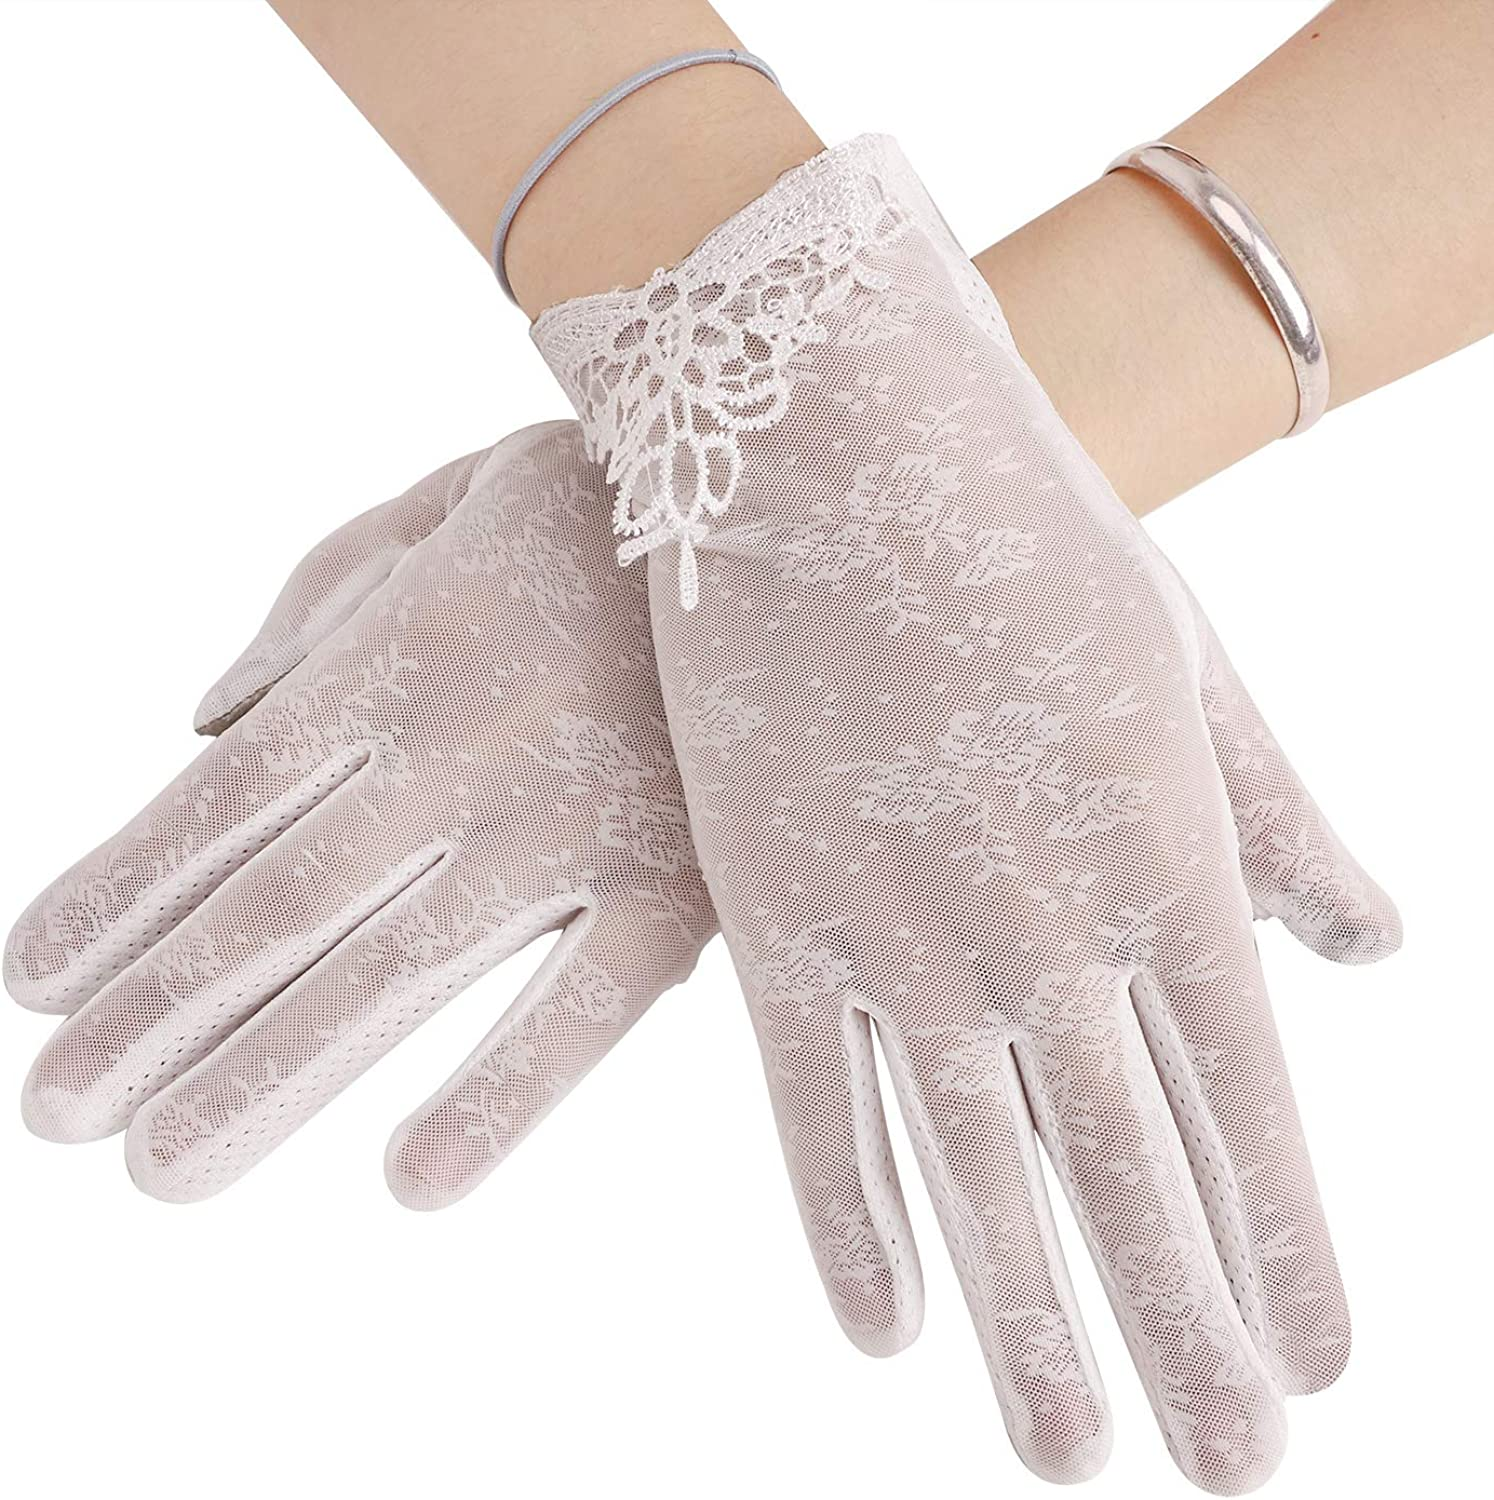 Floral Gloves Cotton Outdoor for Summer UV Protection,Tea Party Gloves Cotton Gloves. 9 Women/'s Driving Gloves Lace Gloves